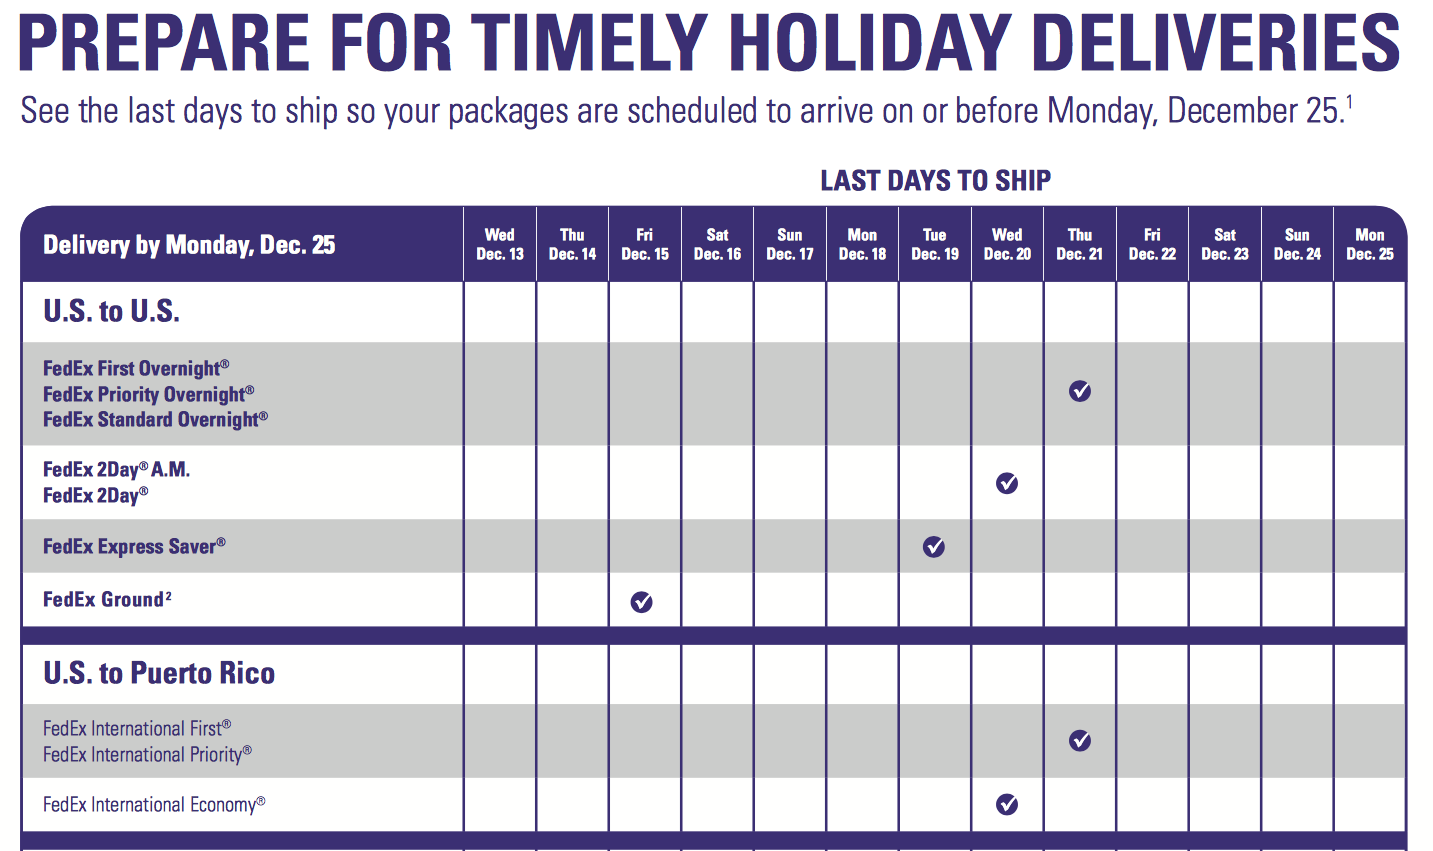 CHRISTMAS DELIVERY DEADLINES – The Business Center of Marshfield